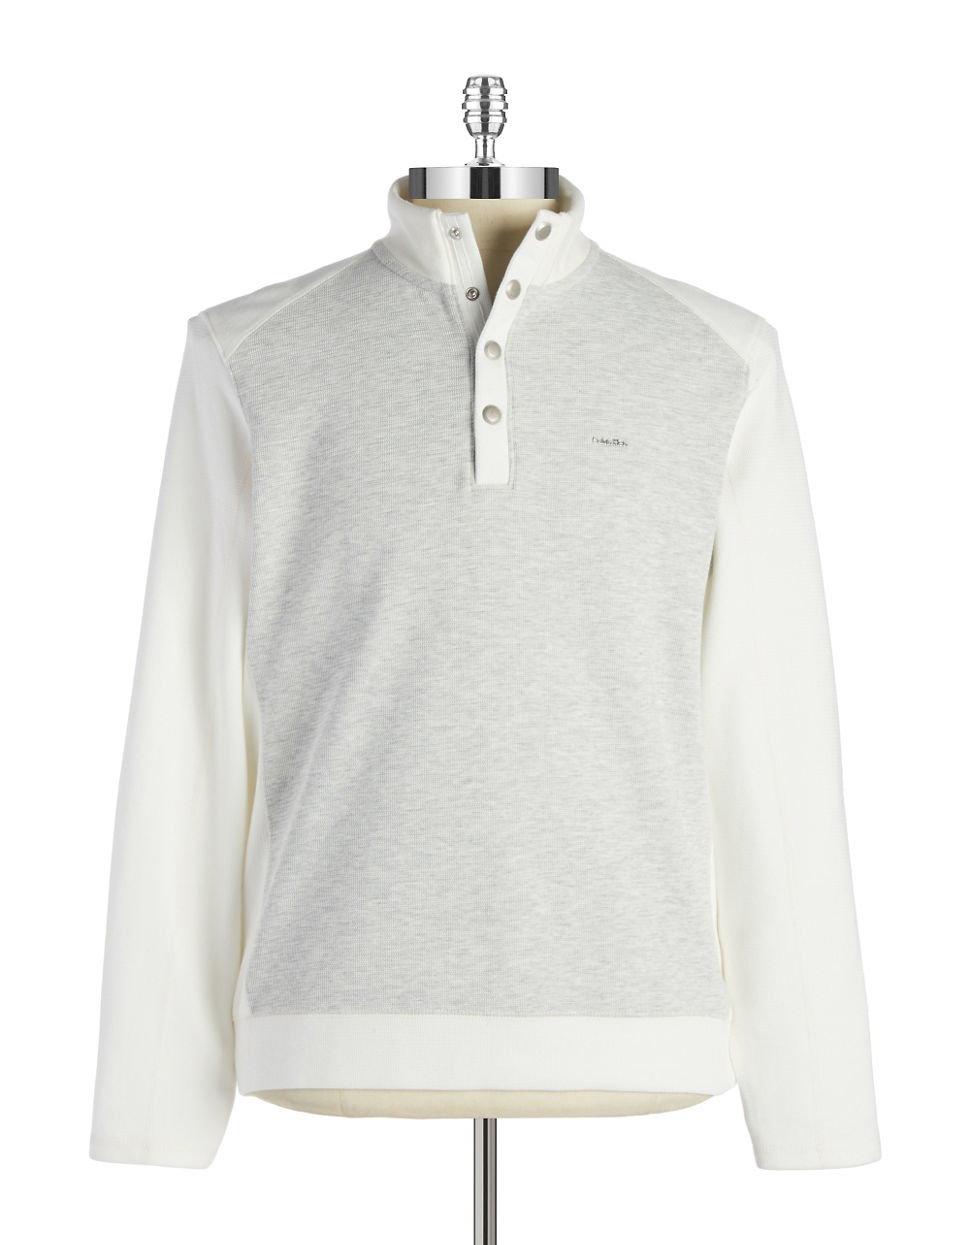 calvin klein colorblocked pullover sweater in white for men snow white lyst. Black Bedroom Furniture Sets. Home Design Ideas